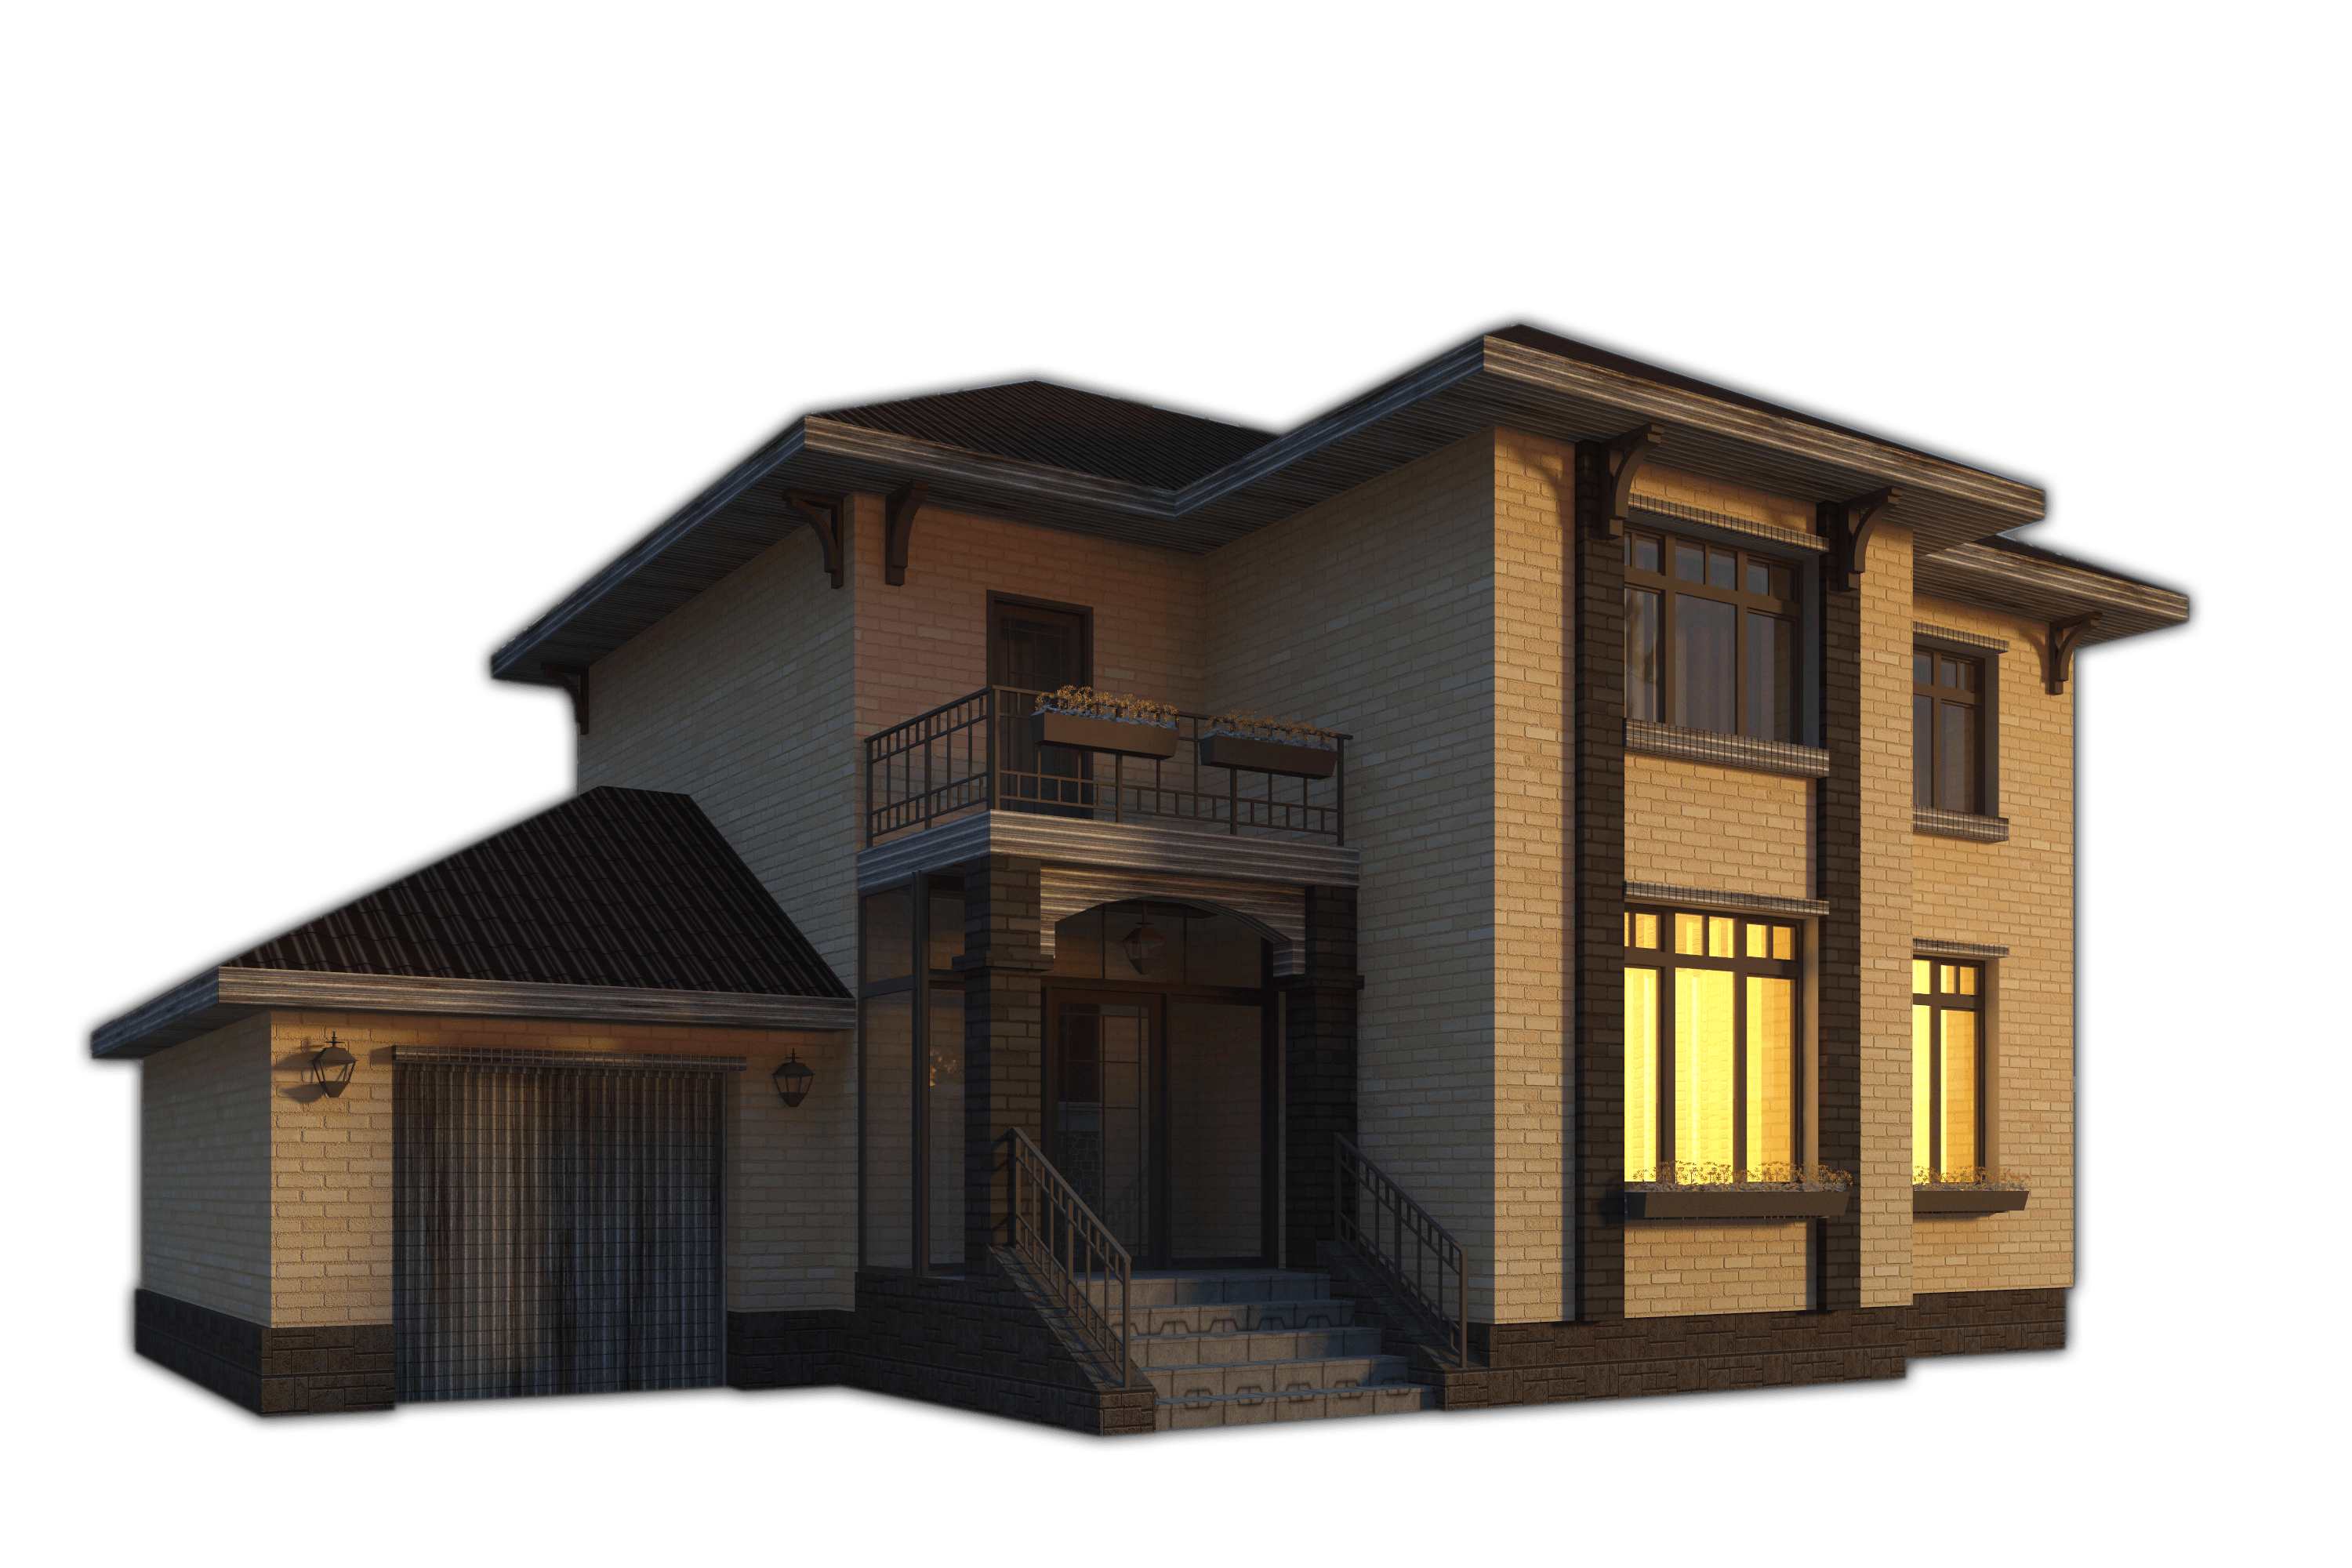 Rendering of house with film